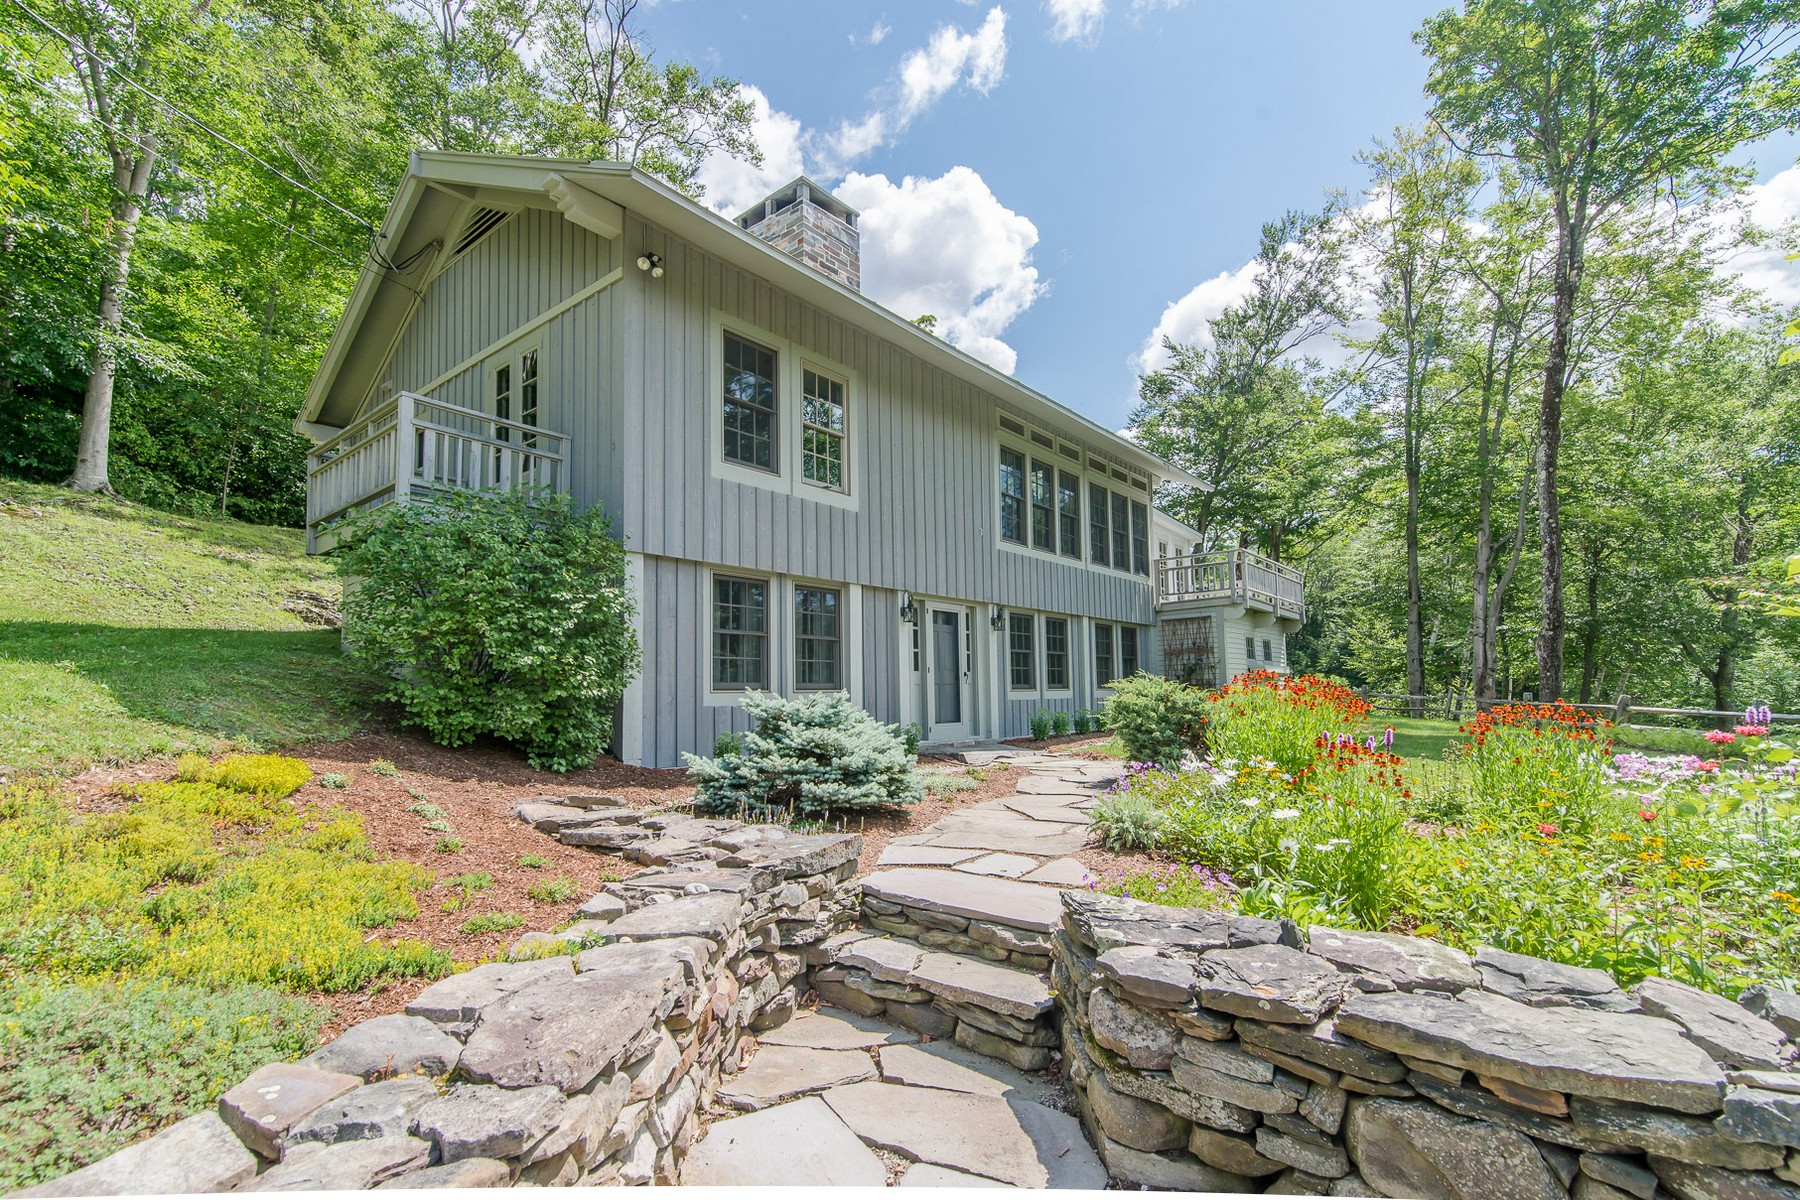 Single Family Home for Sale at Decorator Designs 3452 Green Hill Rd Danby, Vermont 05739 United States